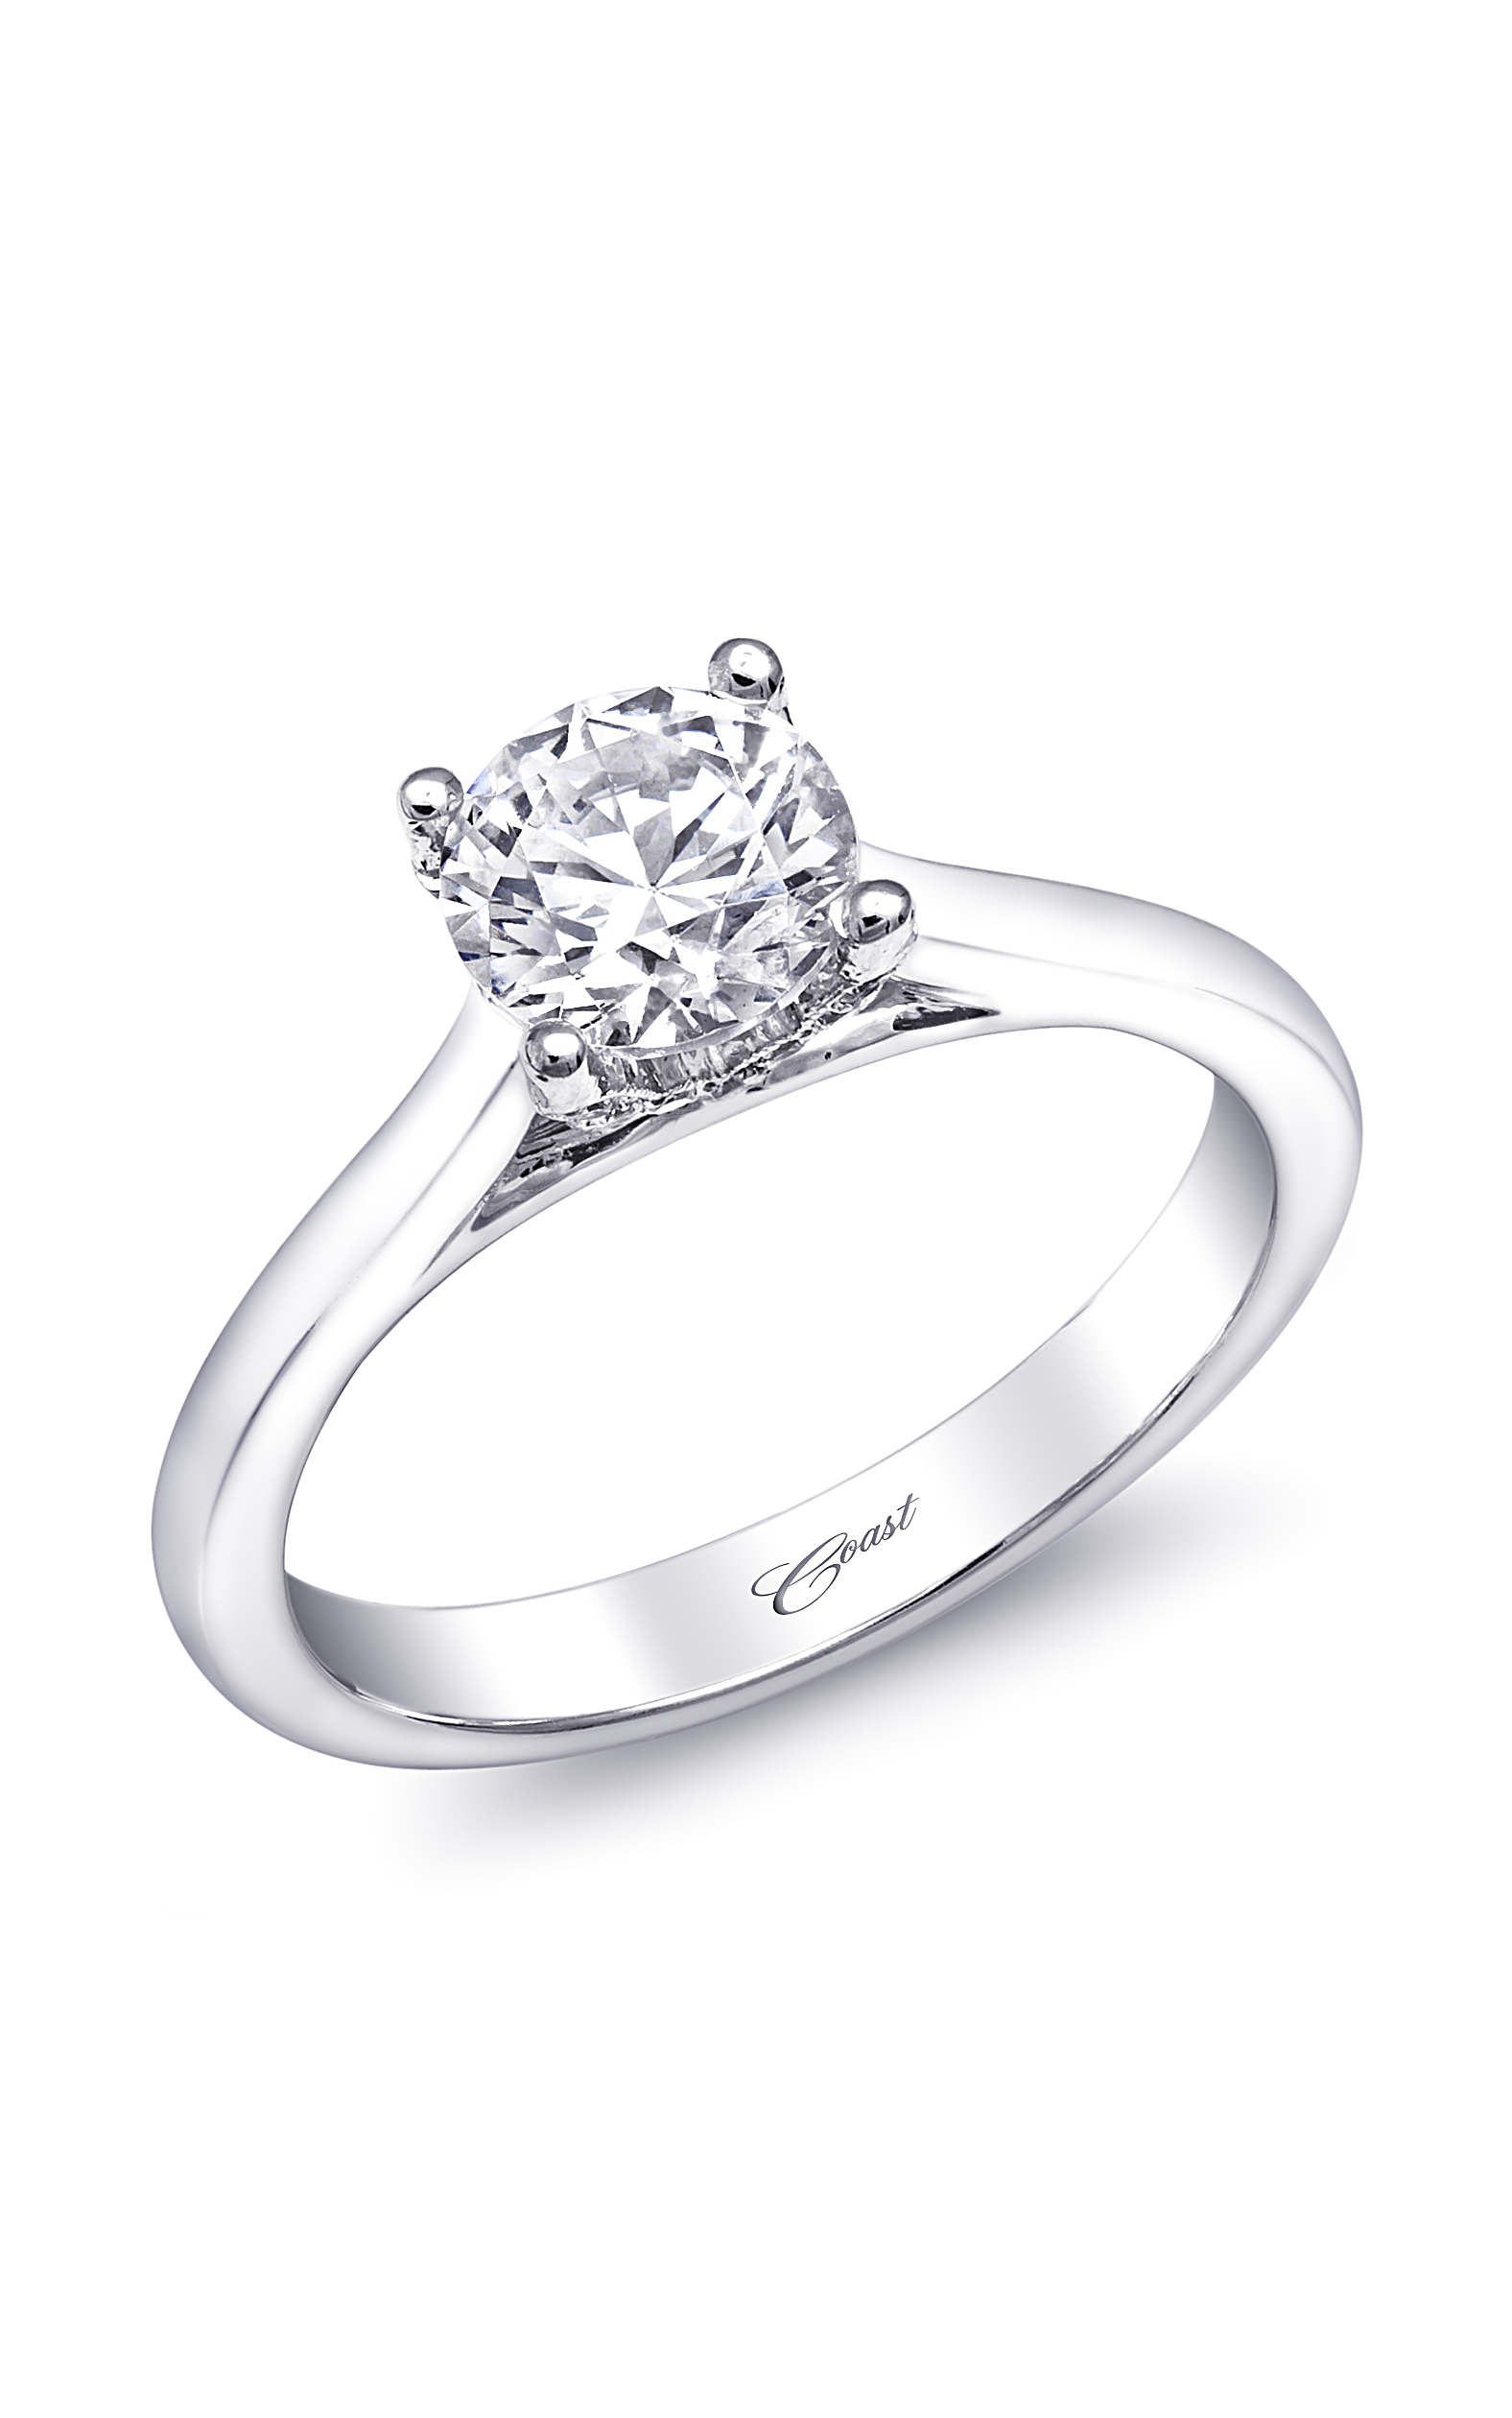 Coast Diamond Romance LC5229 product image